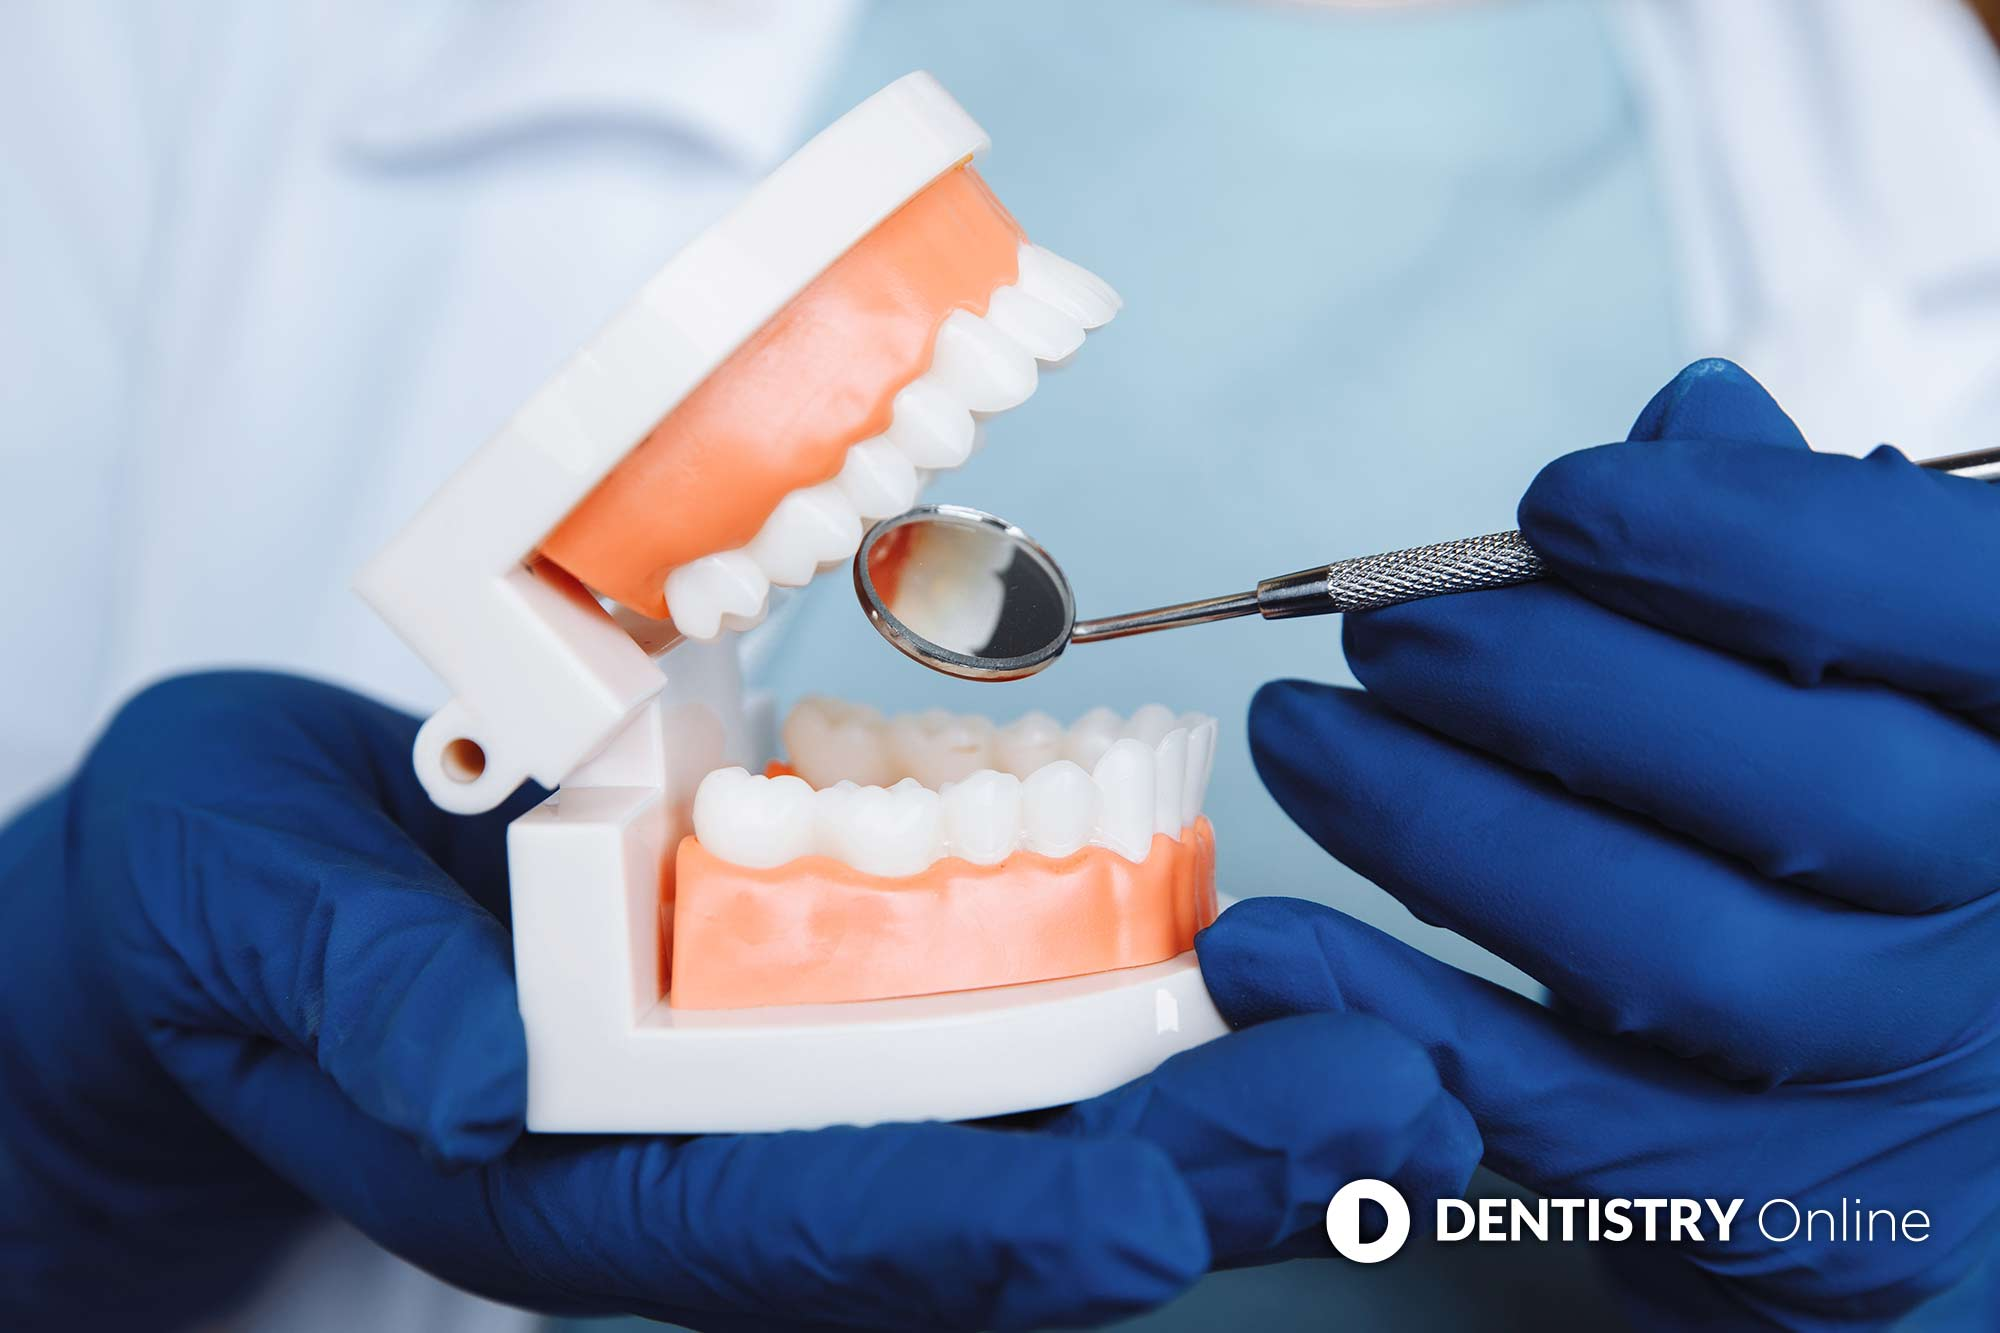 Funding cuts could deprive thousands of people of dental care, an MP has argued in a fresh bid to protect NHS services